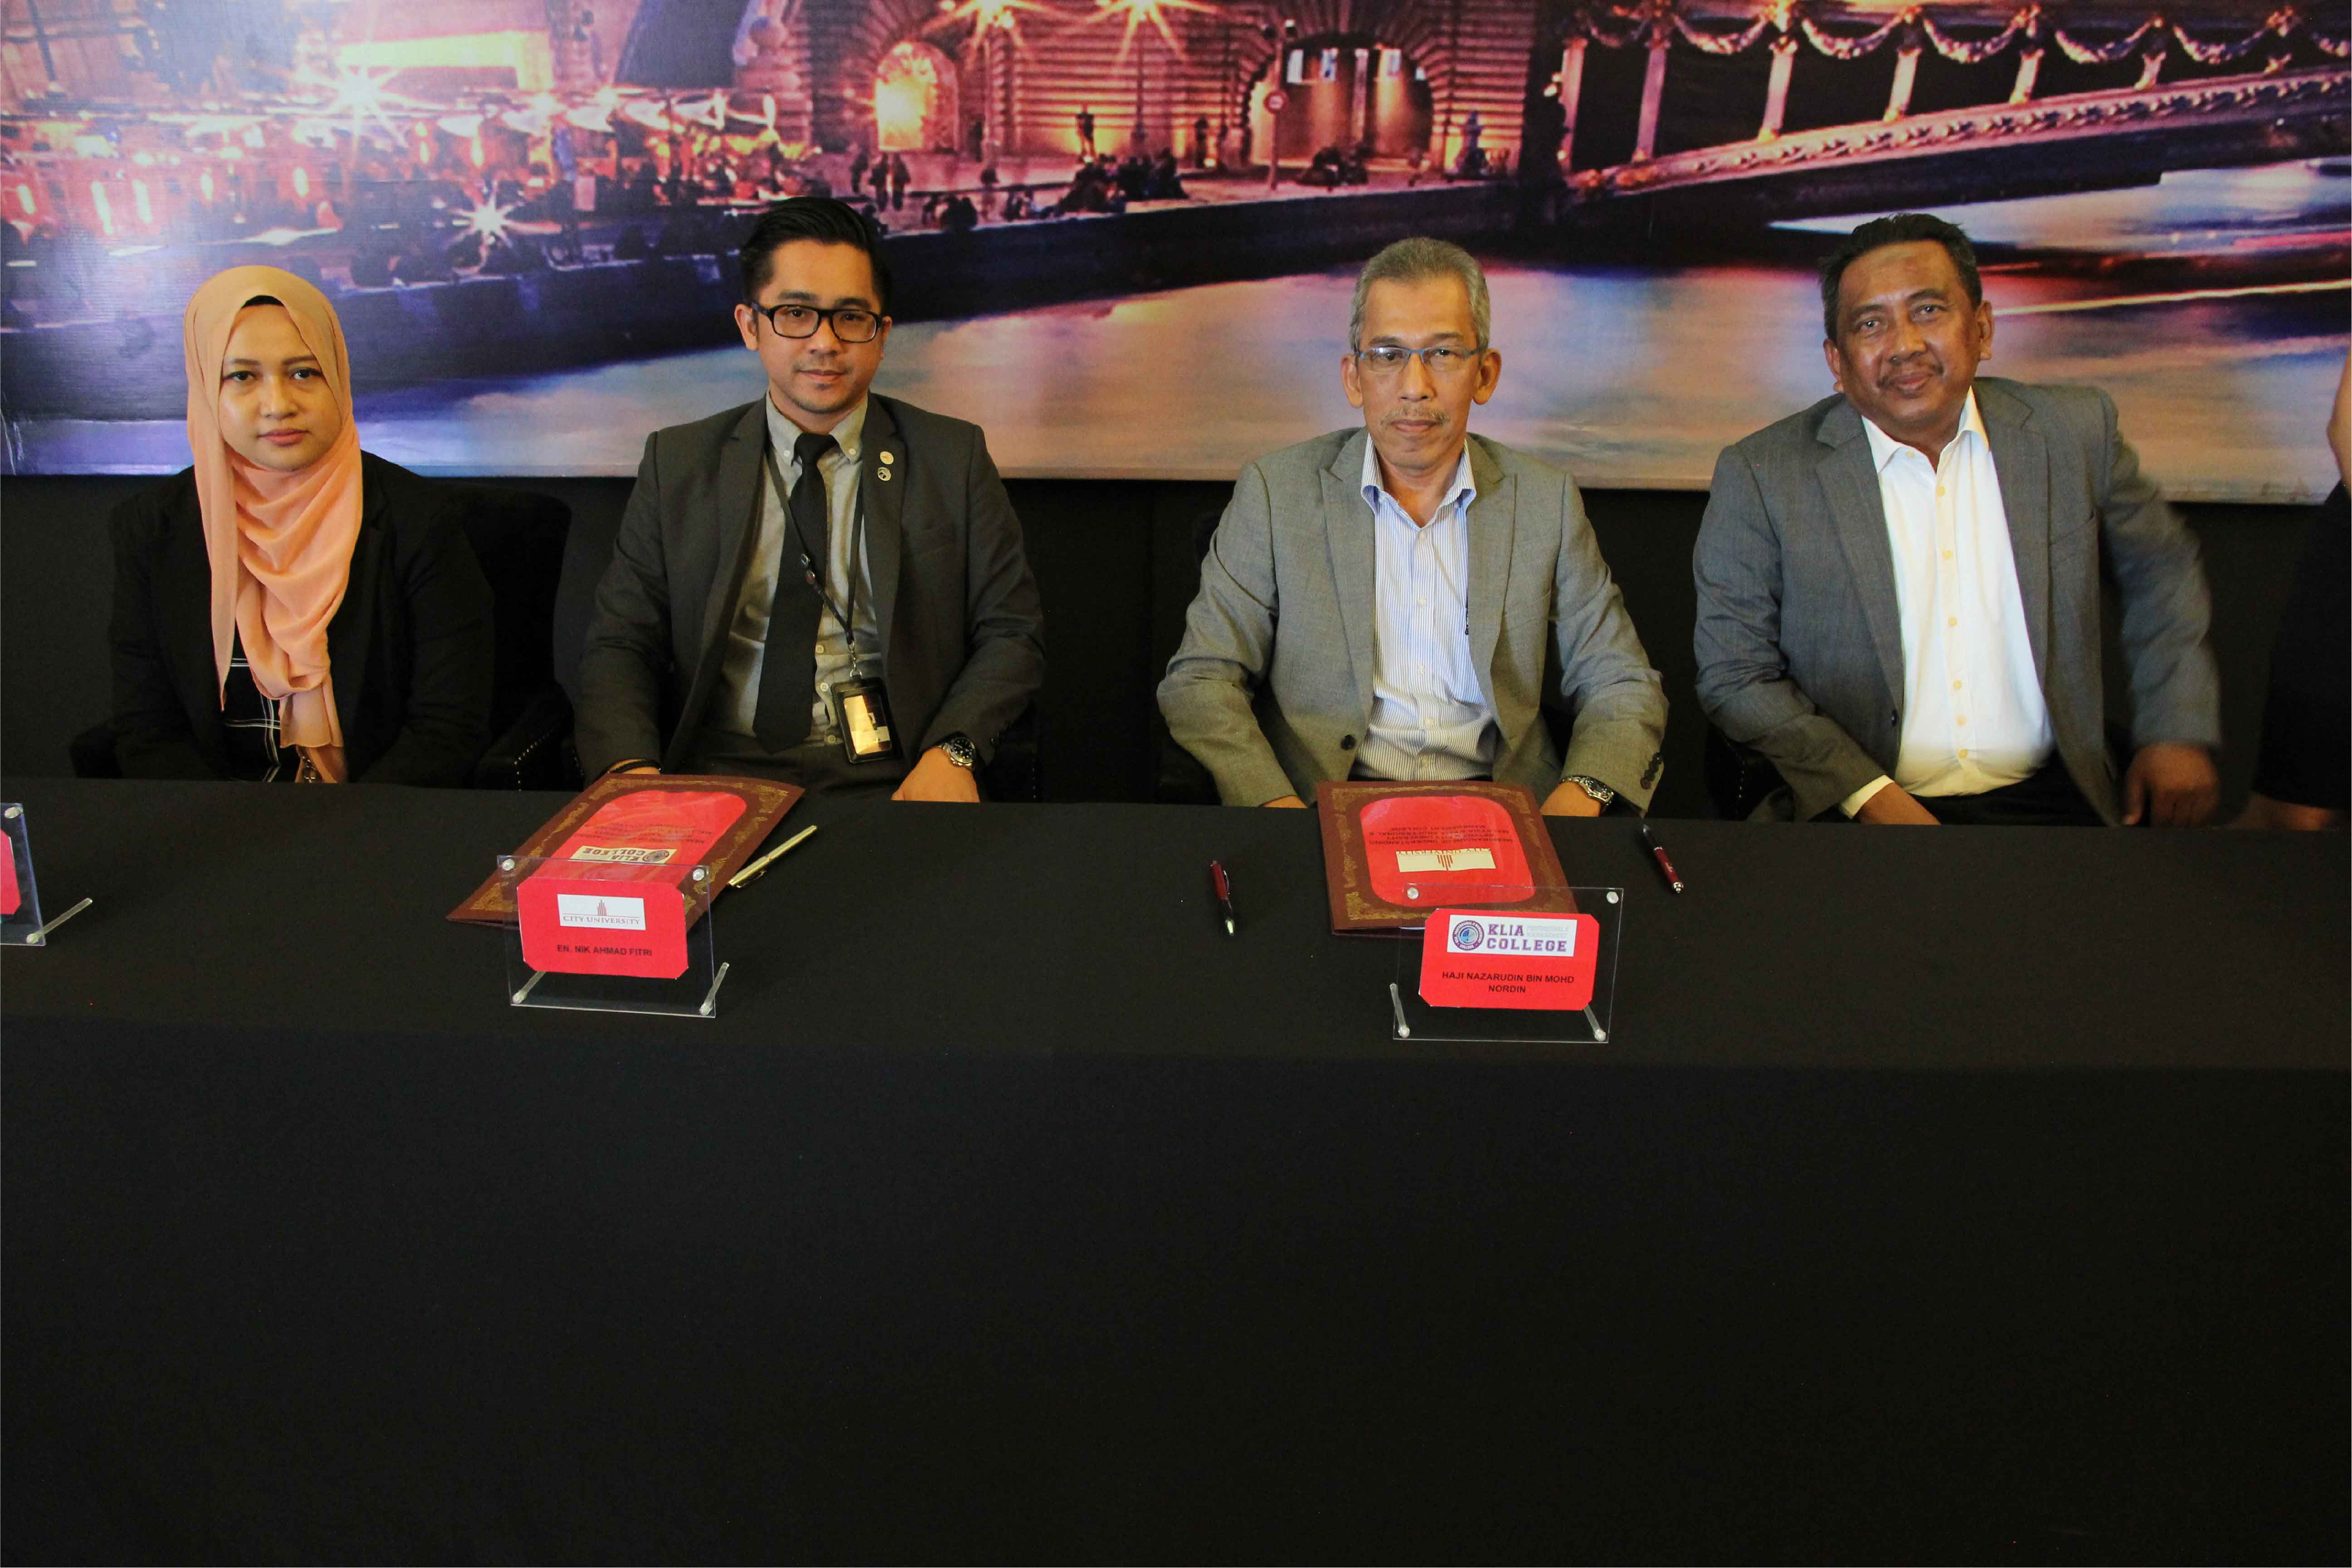 MoU Signing by City University and KLIA Professional Management representatives